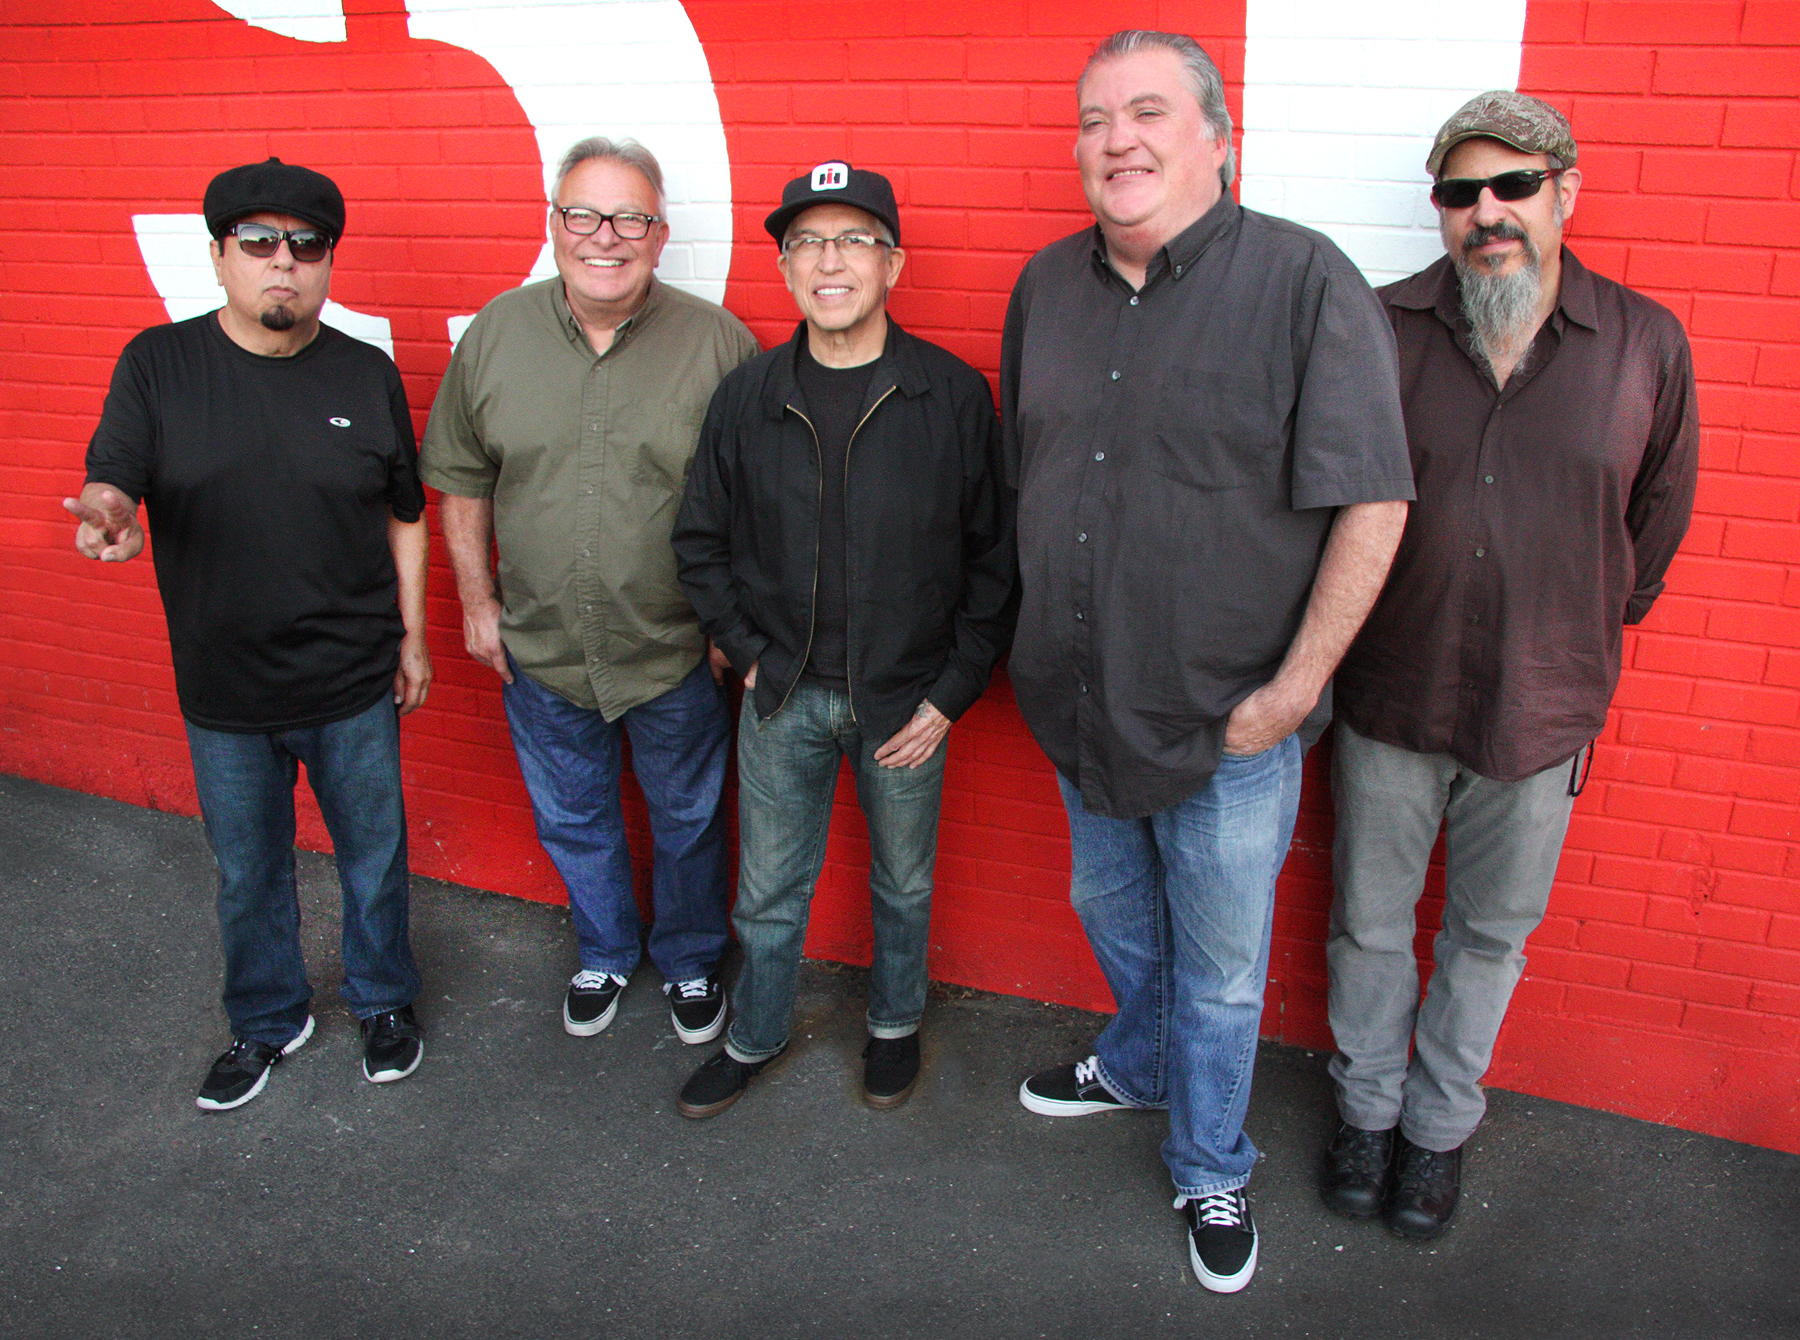 Los lobos gog press photo